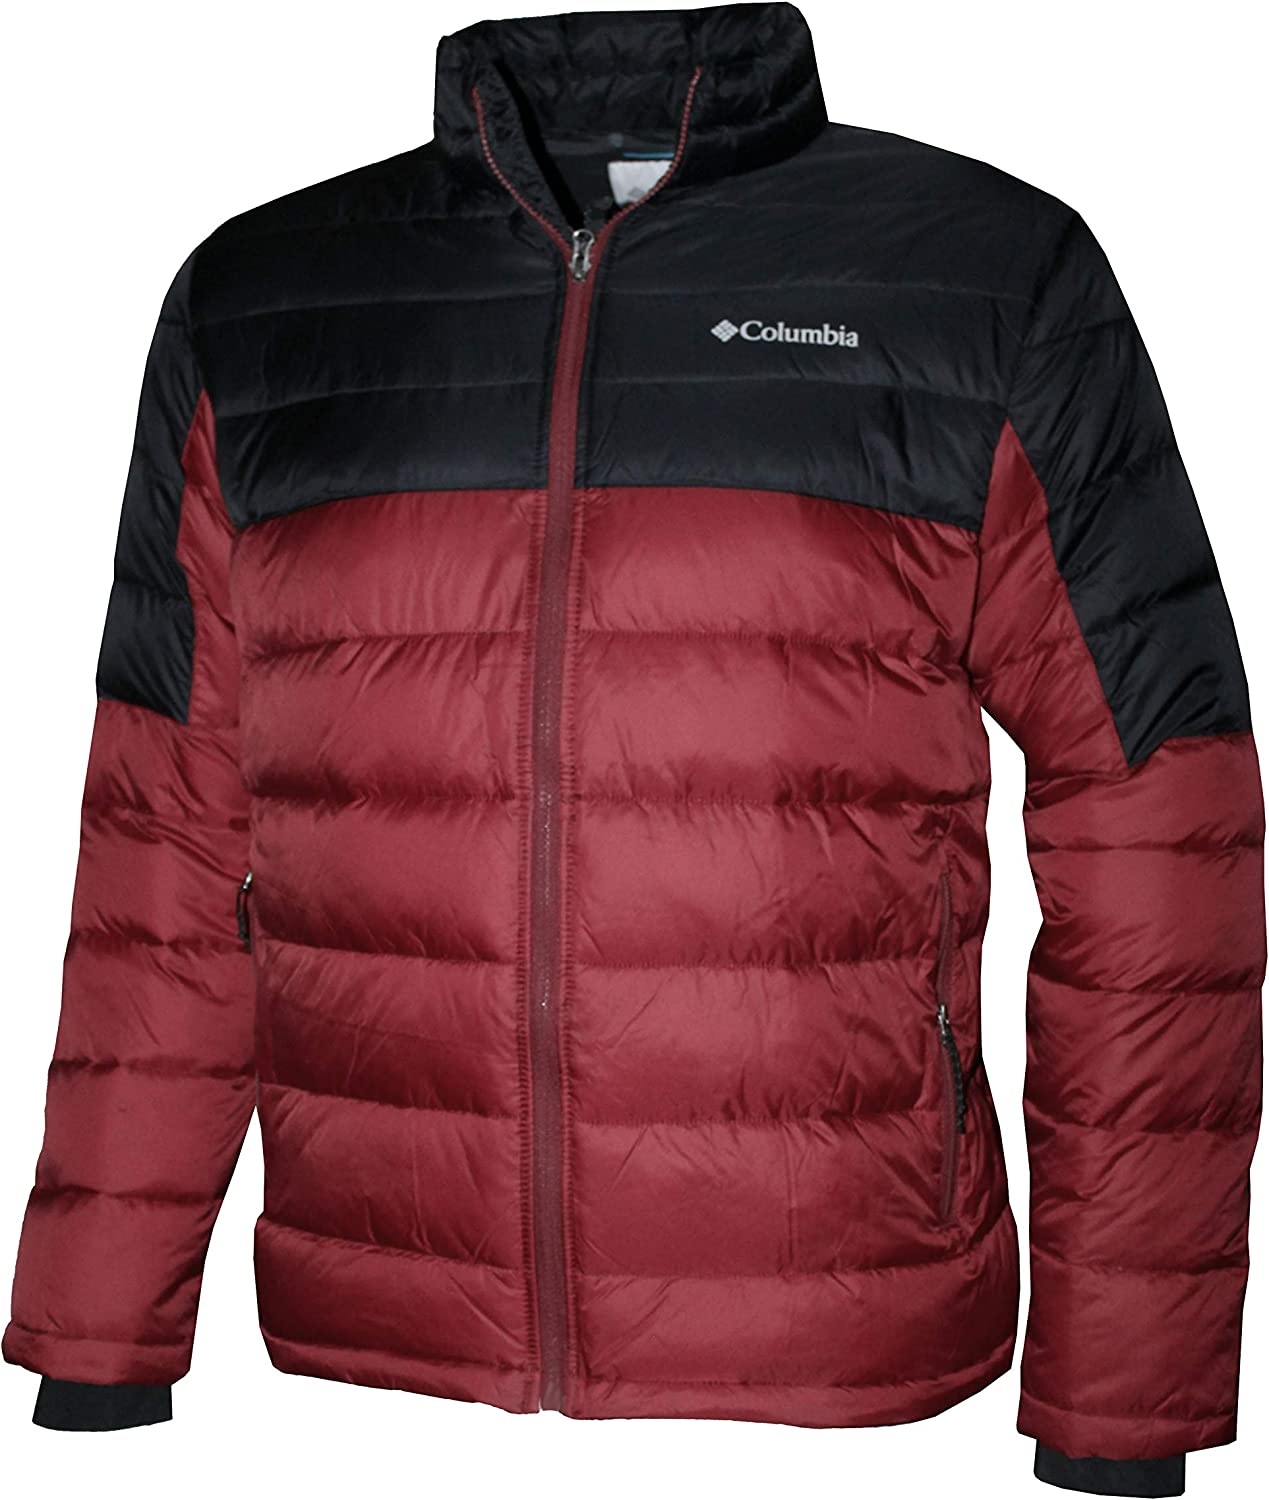 Columbia Men's New Discovery II Insulated Puffer Jacket